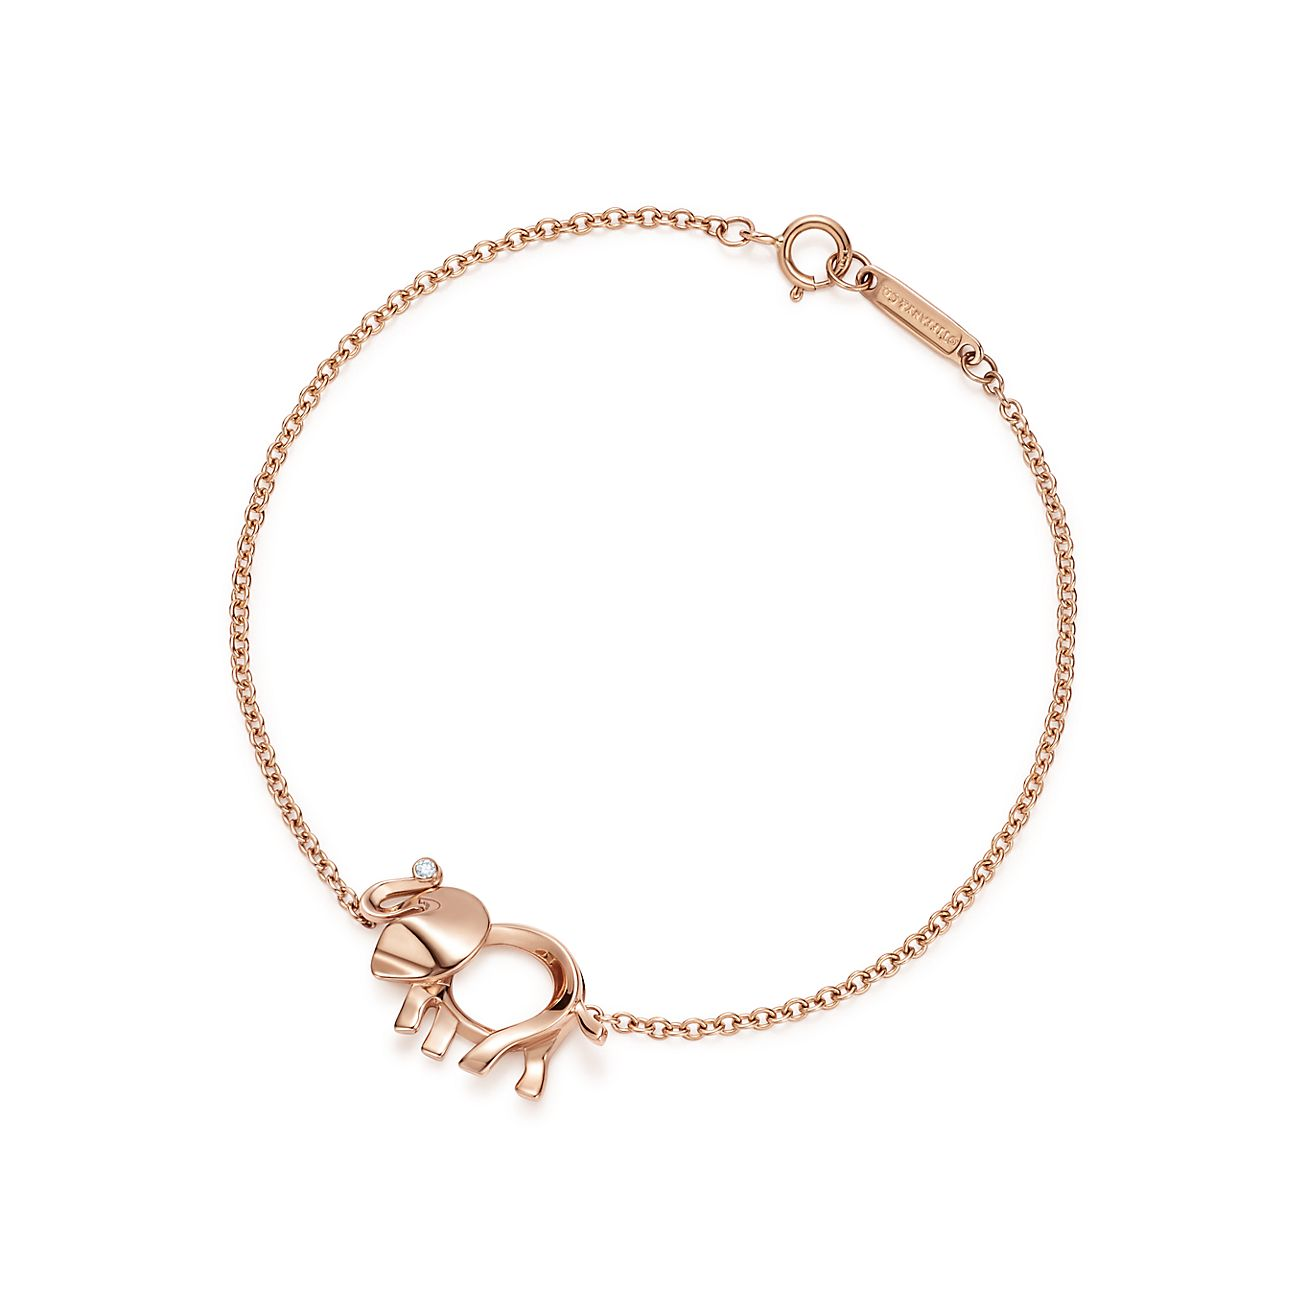 Tiffany Save the Wild elephant charm bracelet in 18k rose gold with a diamond - Size Medium Tiffany & Co.